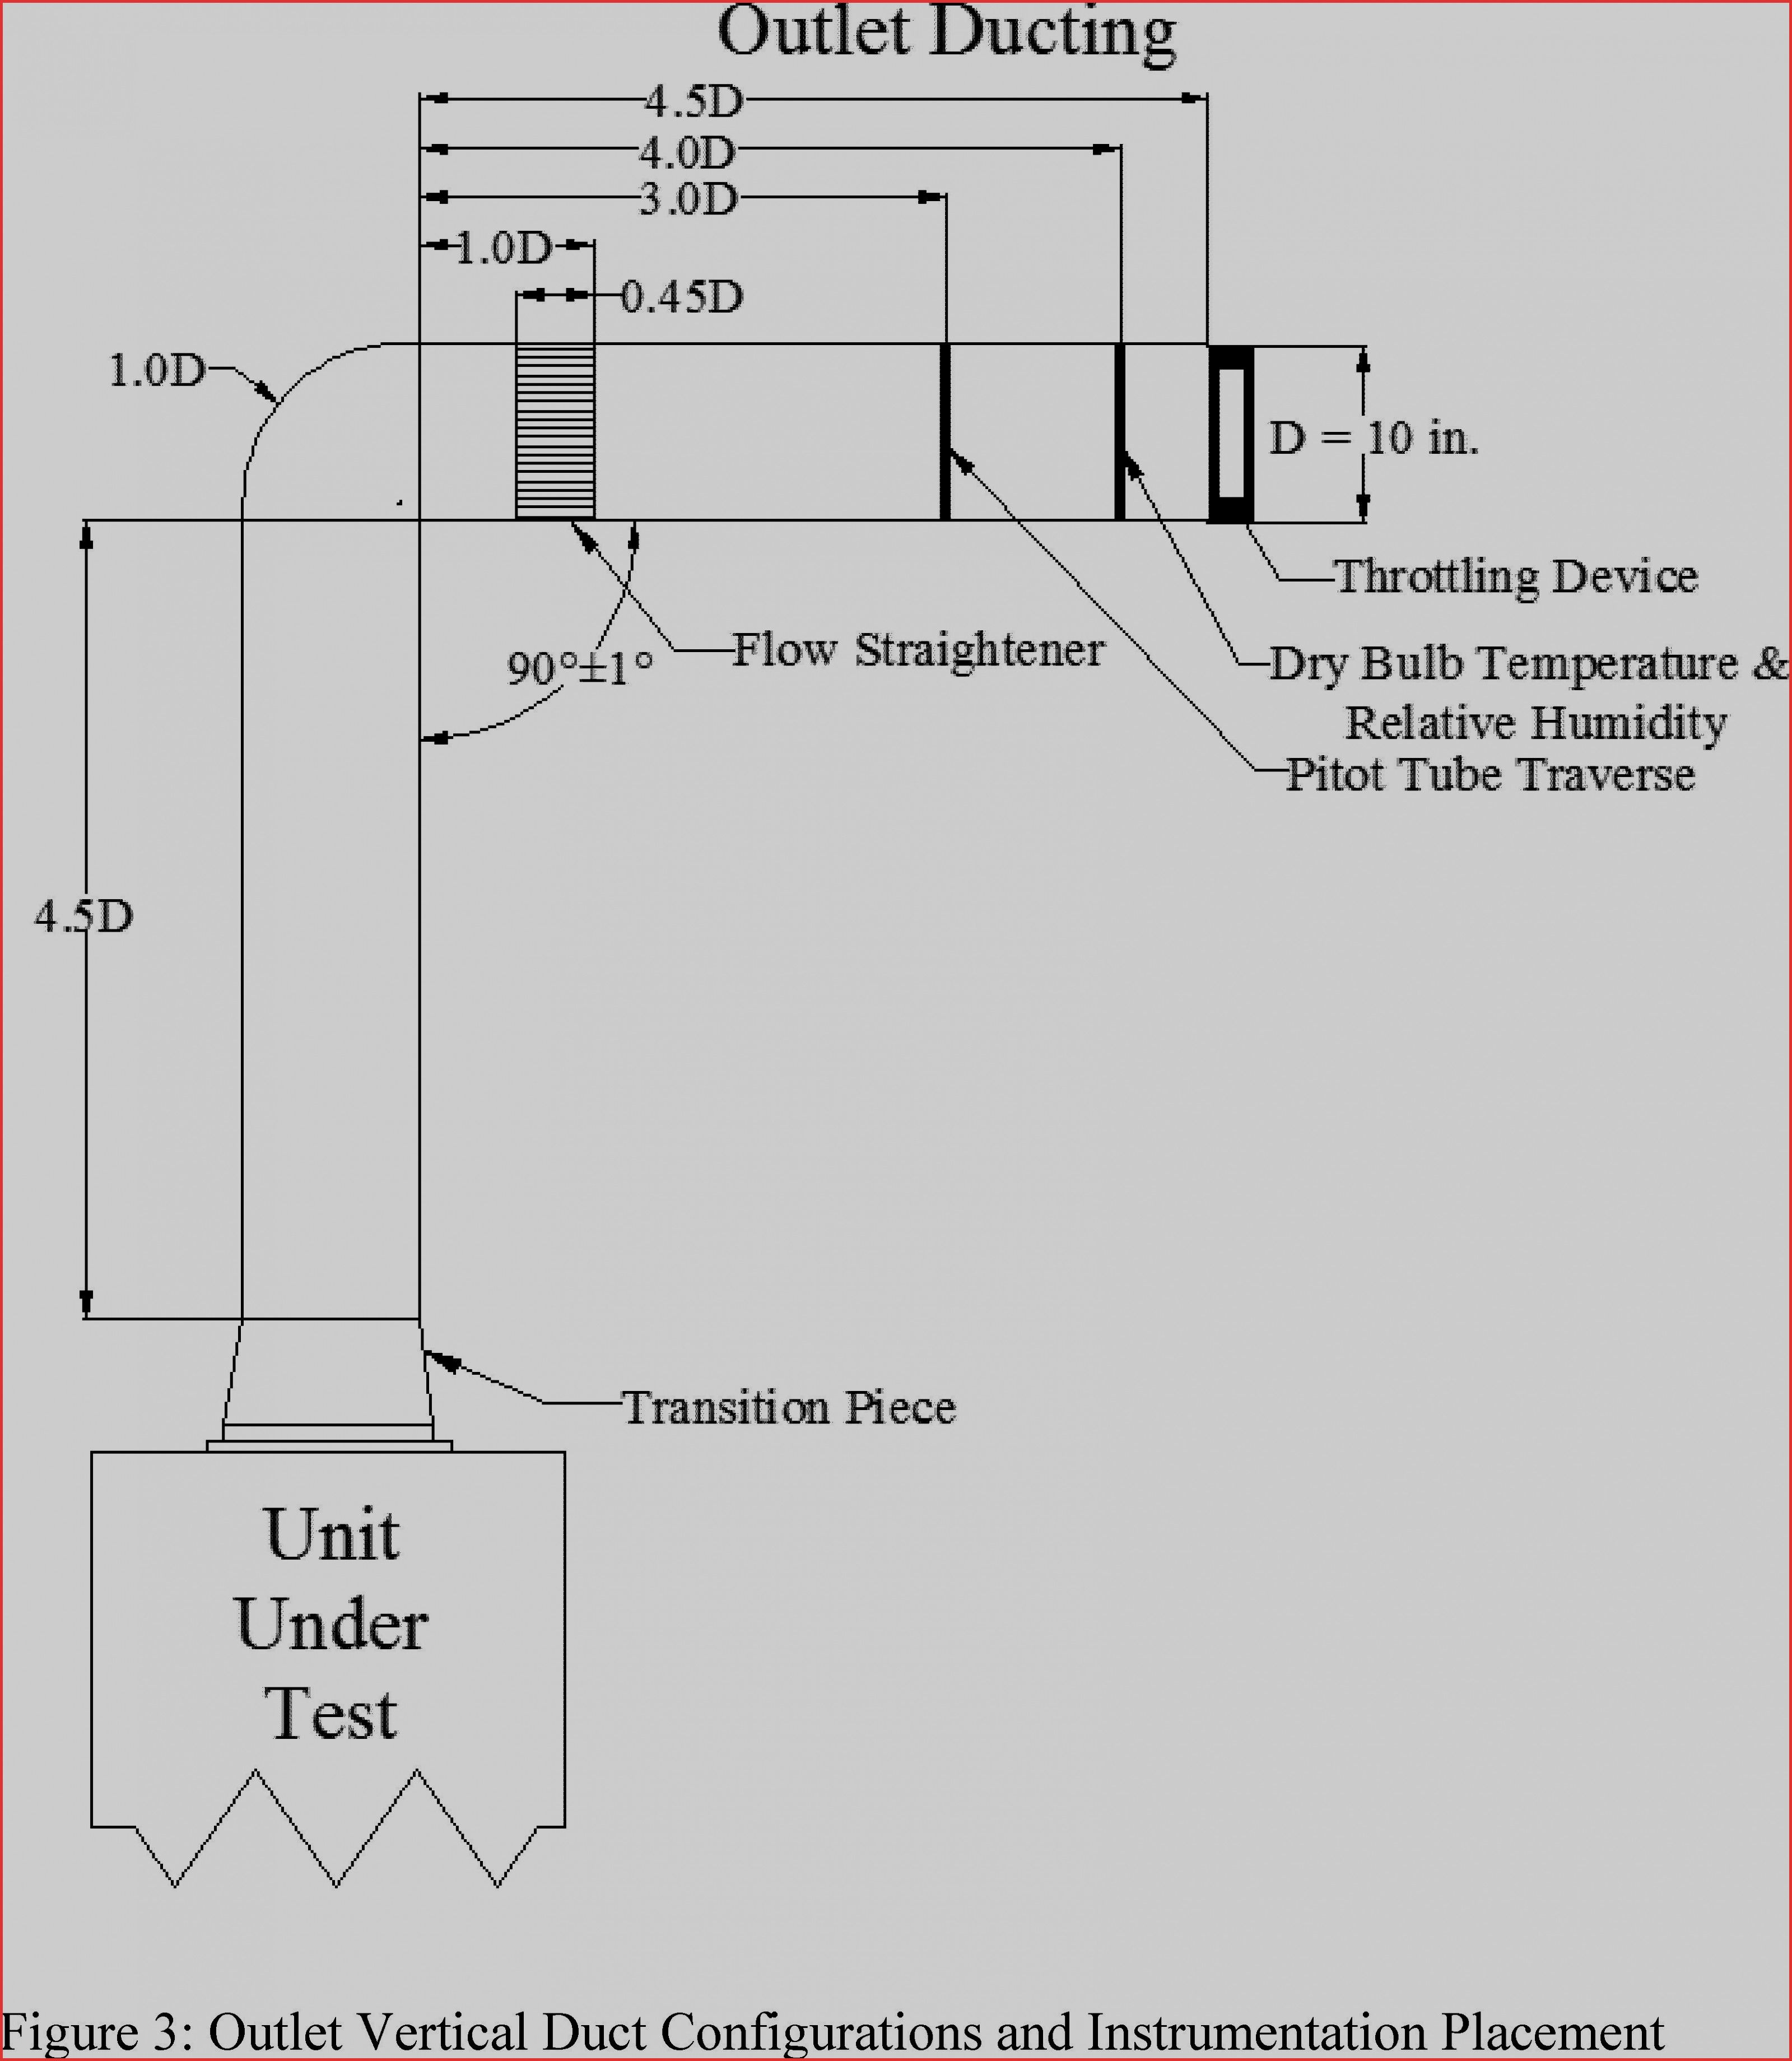 13 Good Wiring Diagram For House Outlets Design S